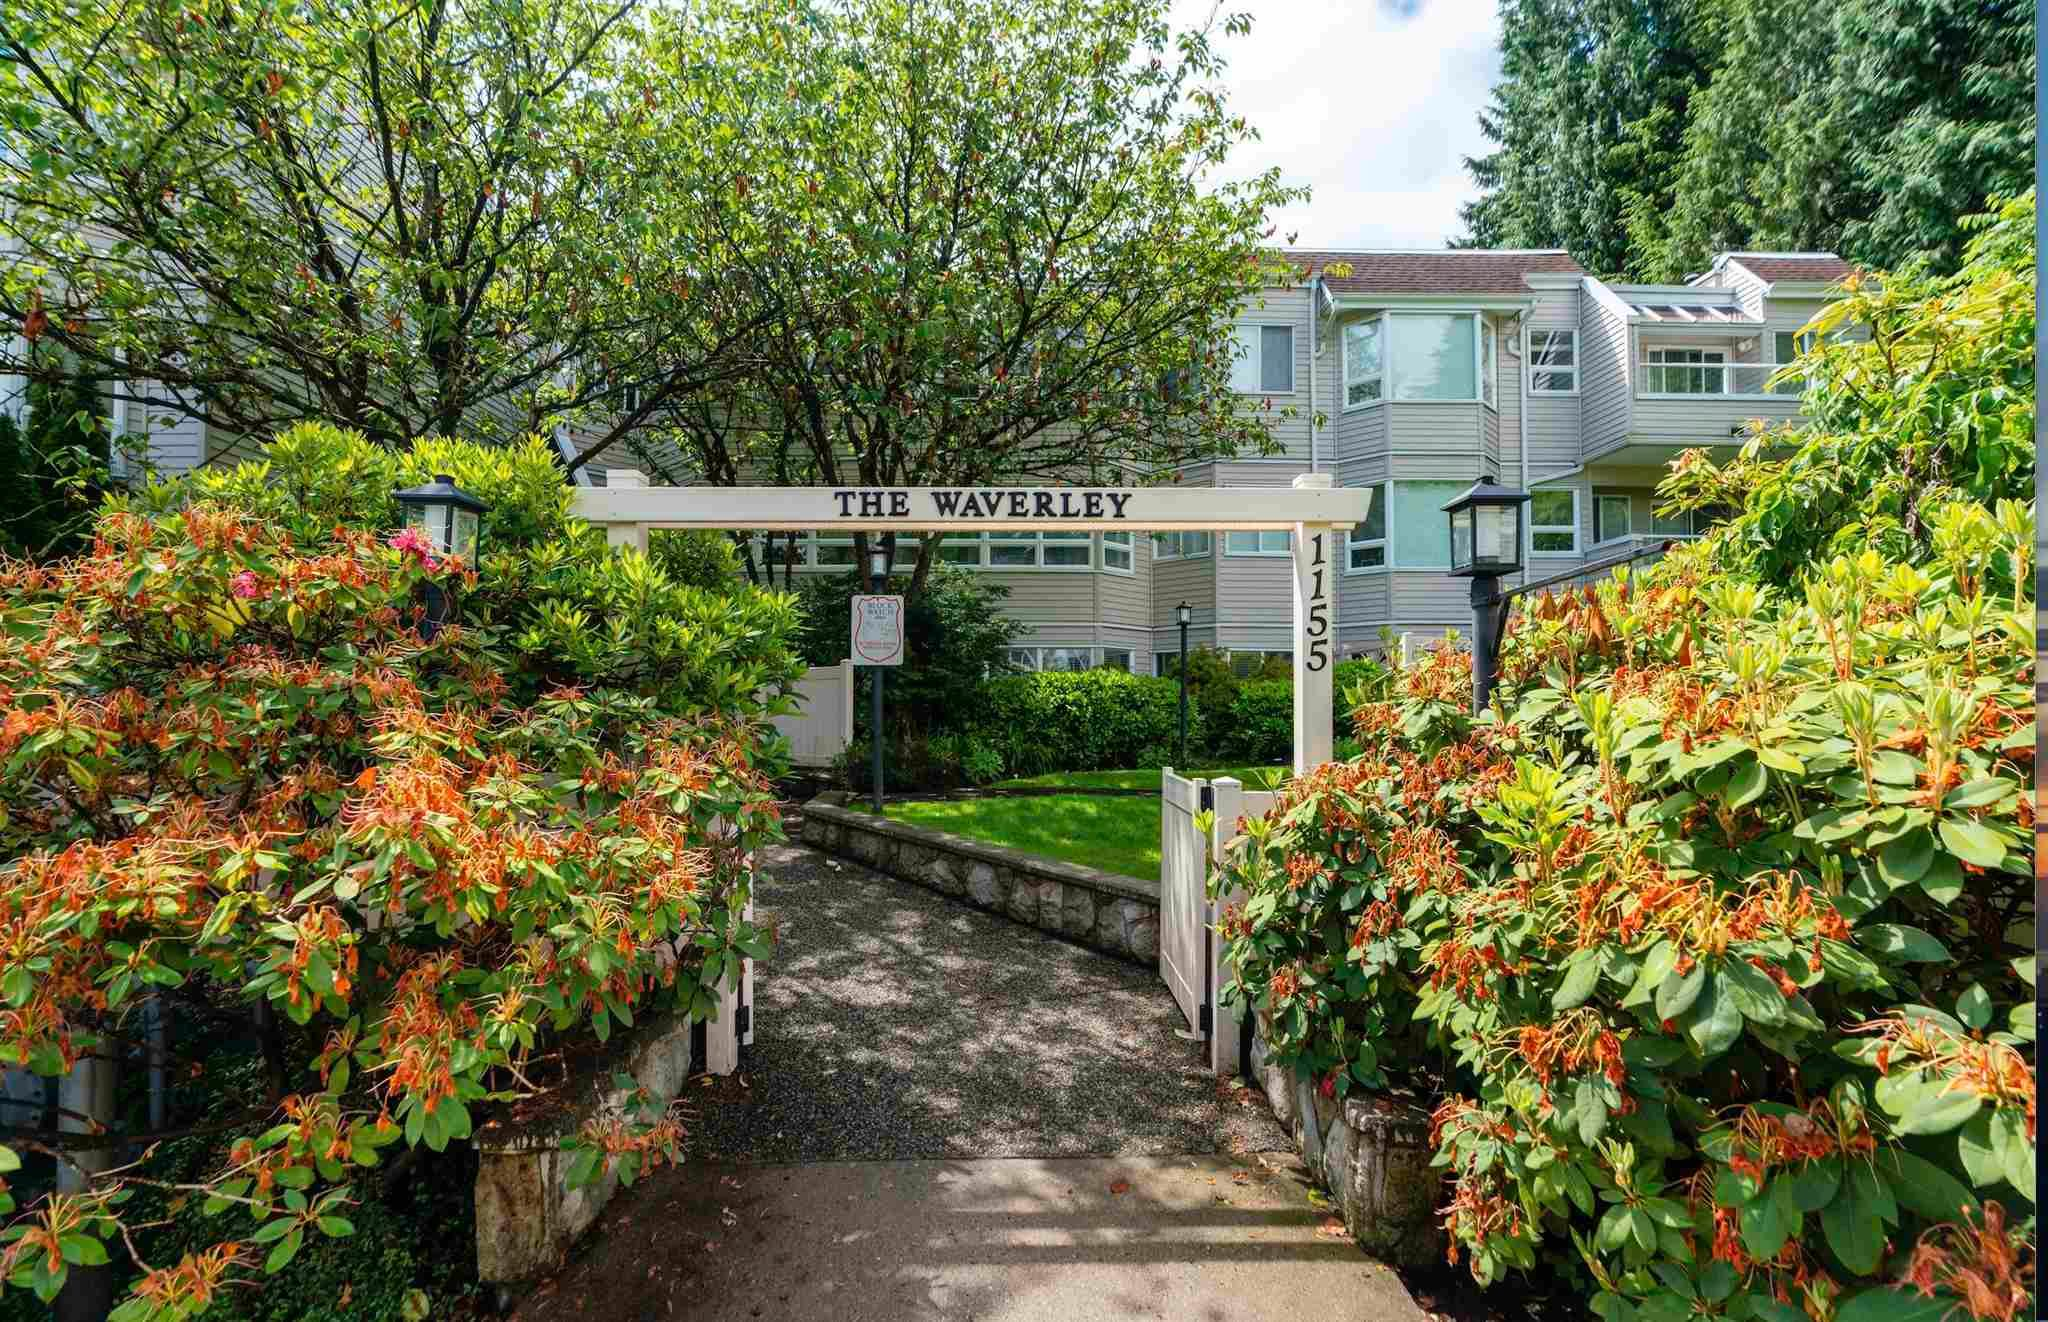 """Main Photo: 309 1155 ROSS Road in North Vancouver: Lynn Valley Condo for sale in """"THE WAVERLEY"""" : MLS®# R2594505"""